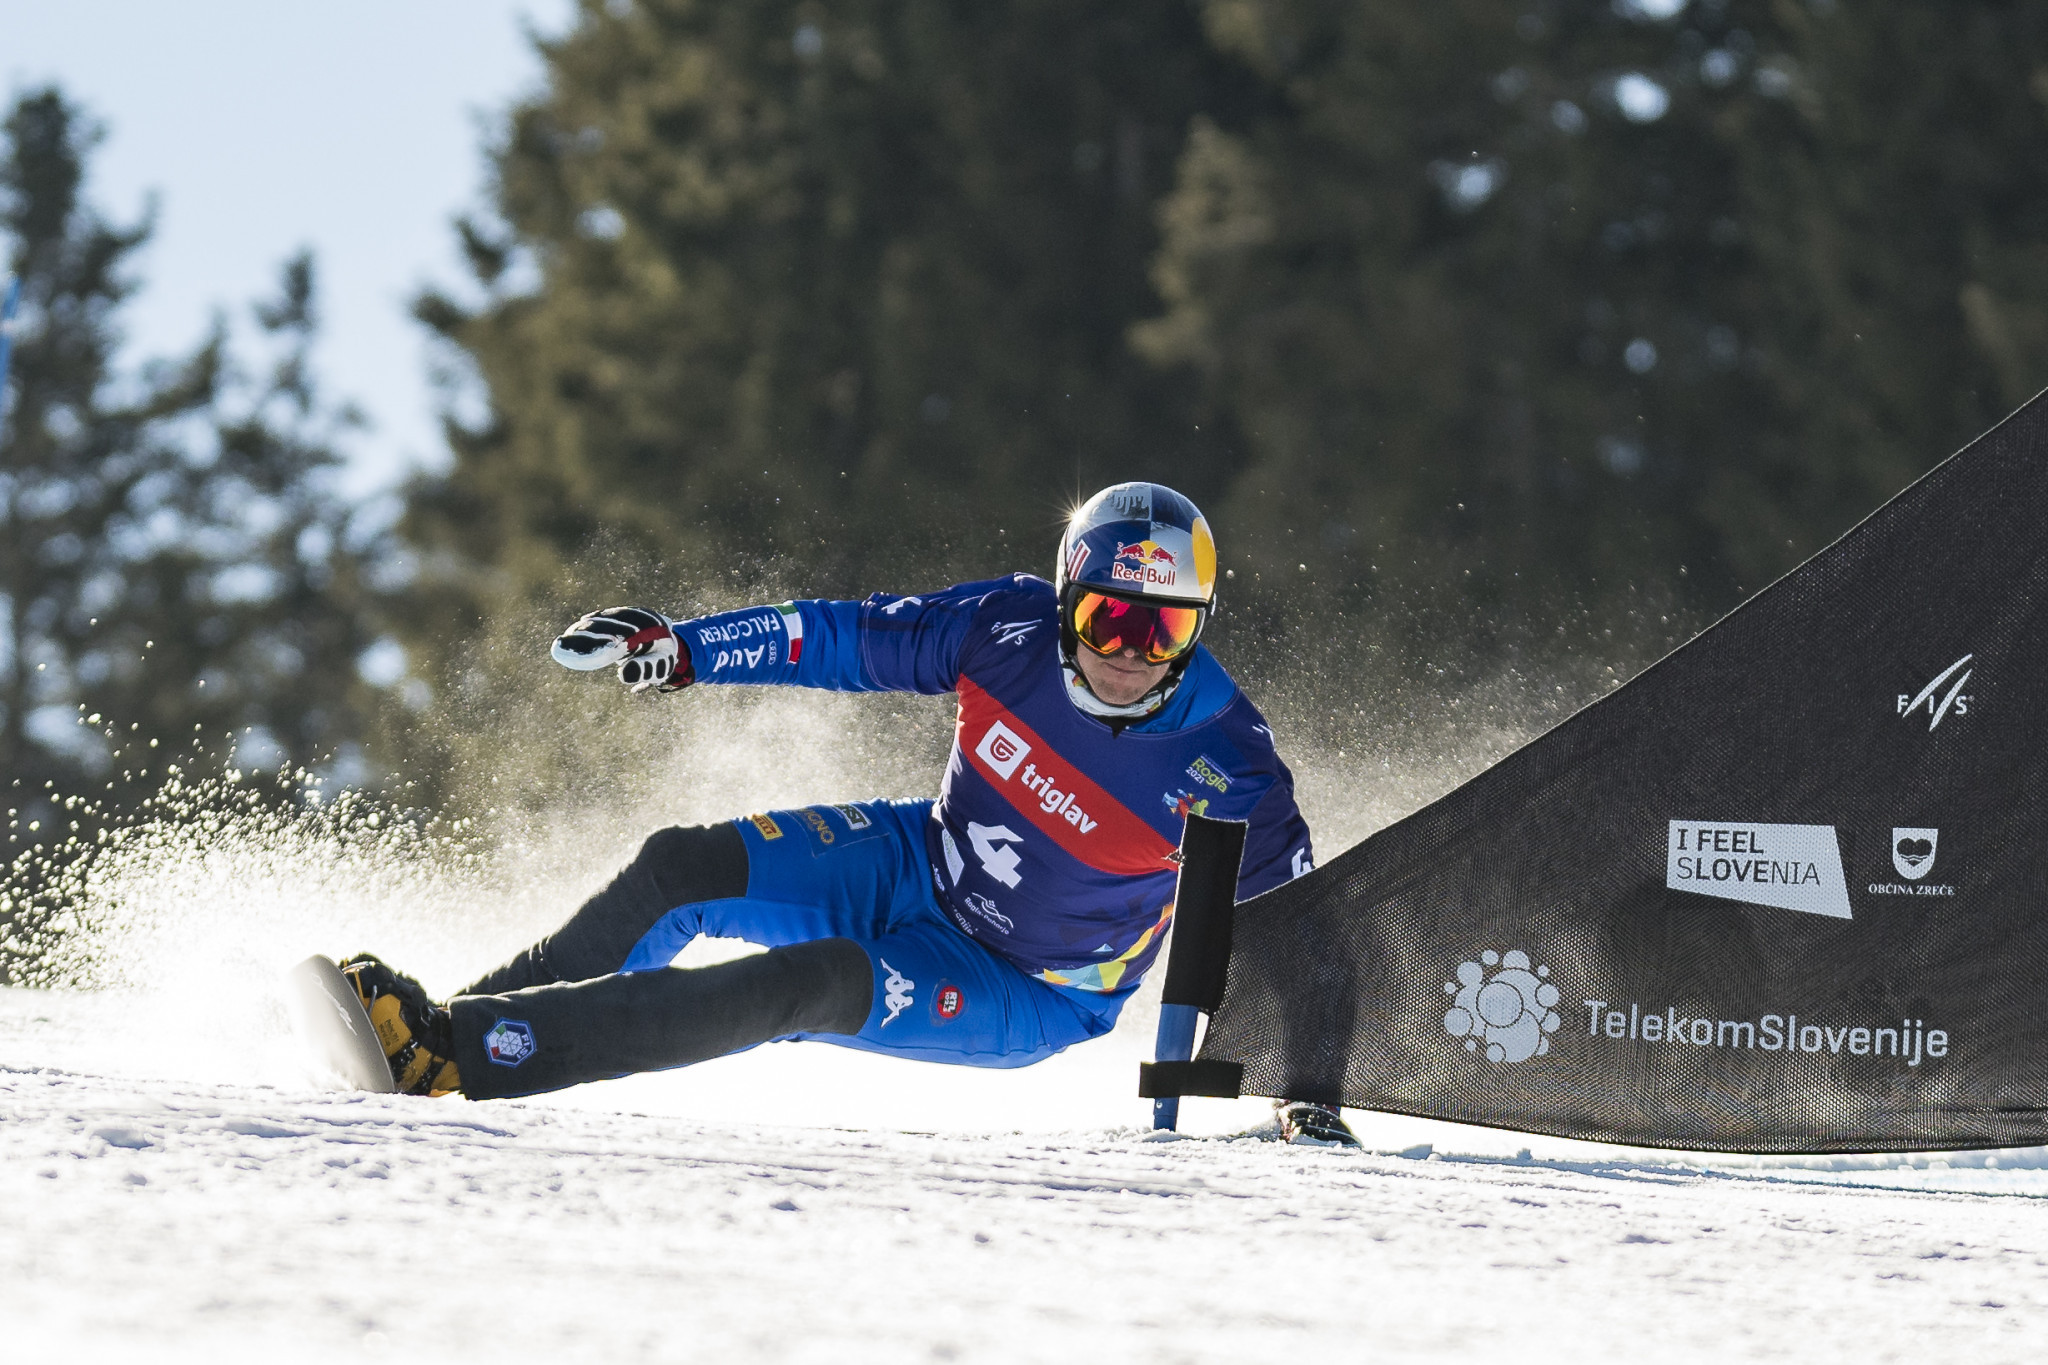 Fischnaller and Hofmeister win FIS Snowboard World Cup parallel giant slalom crystal globes